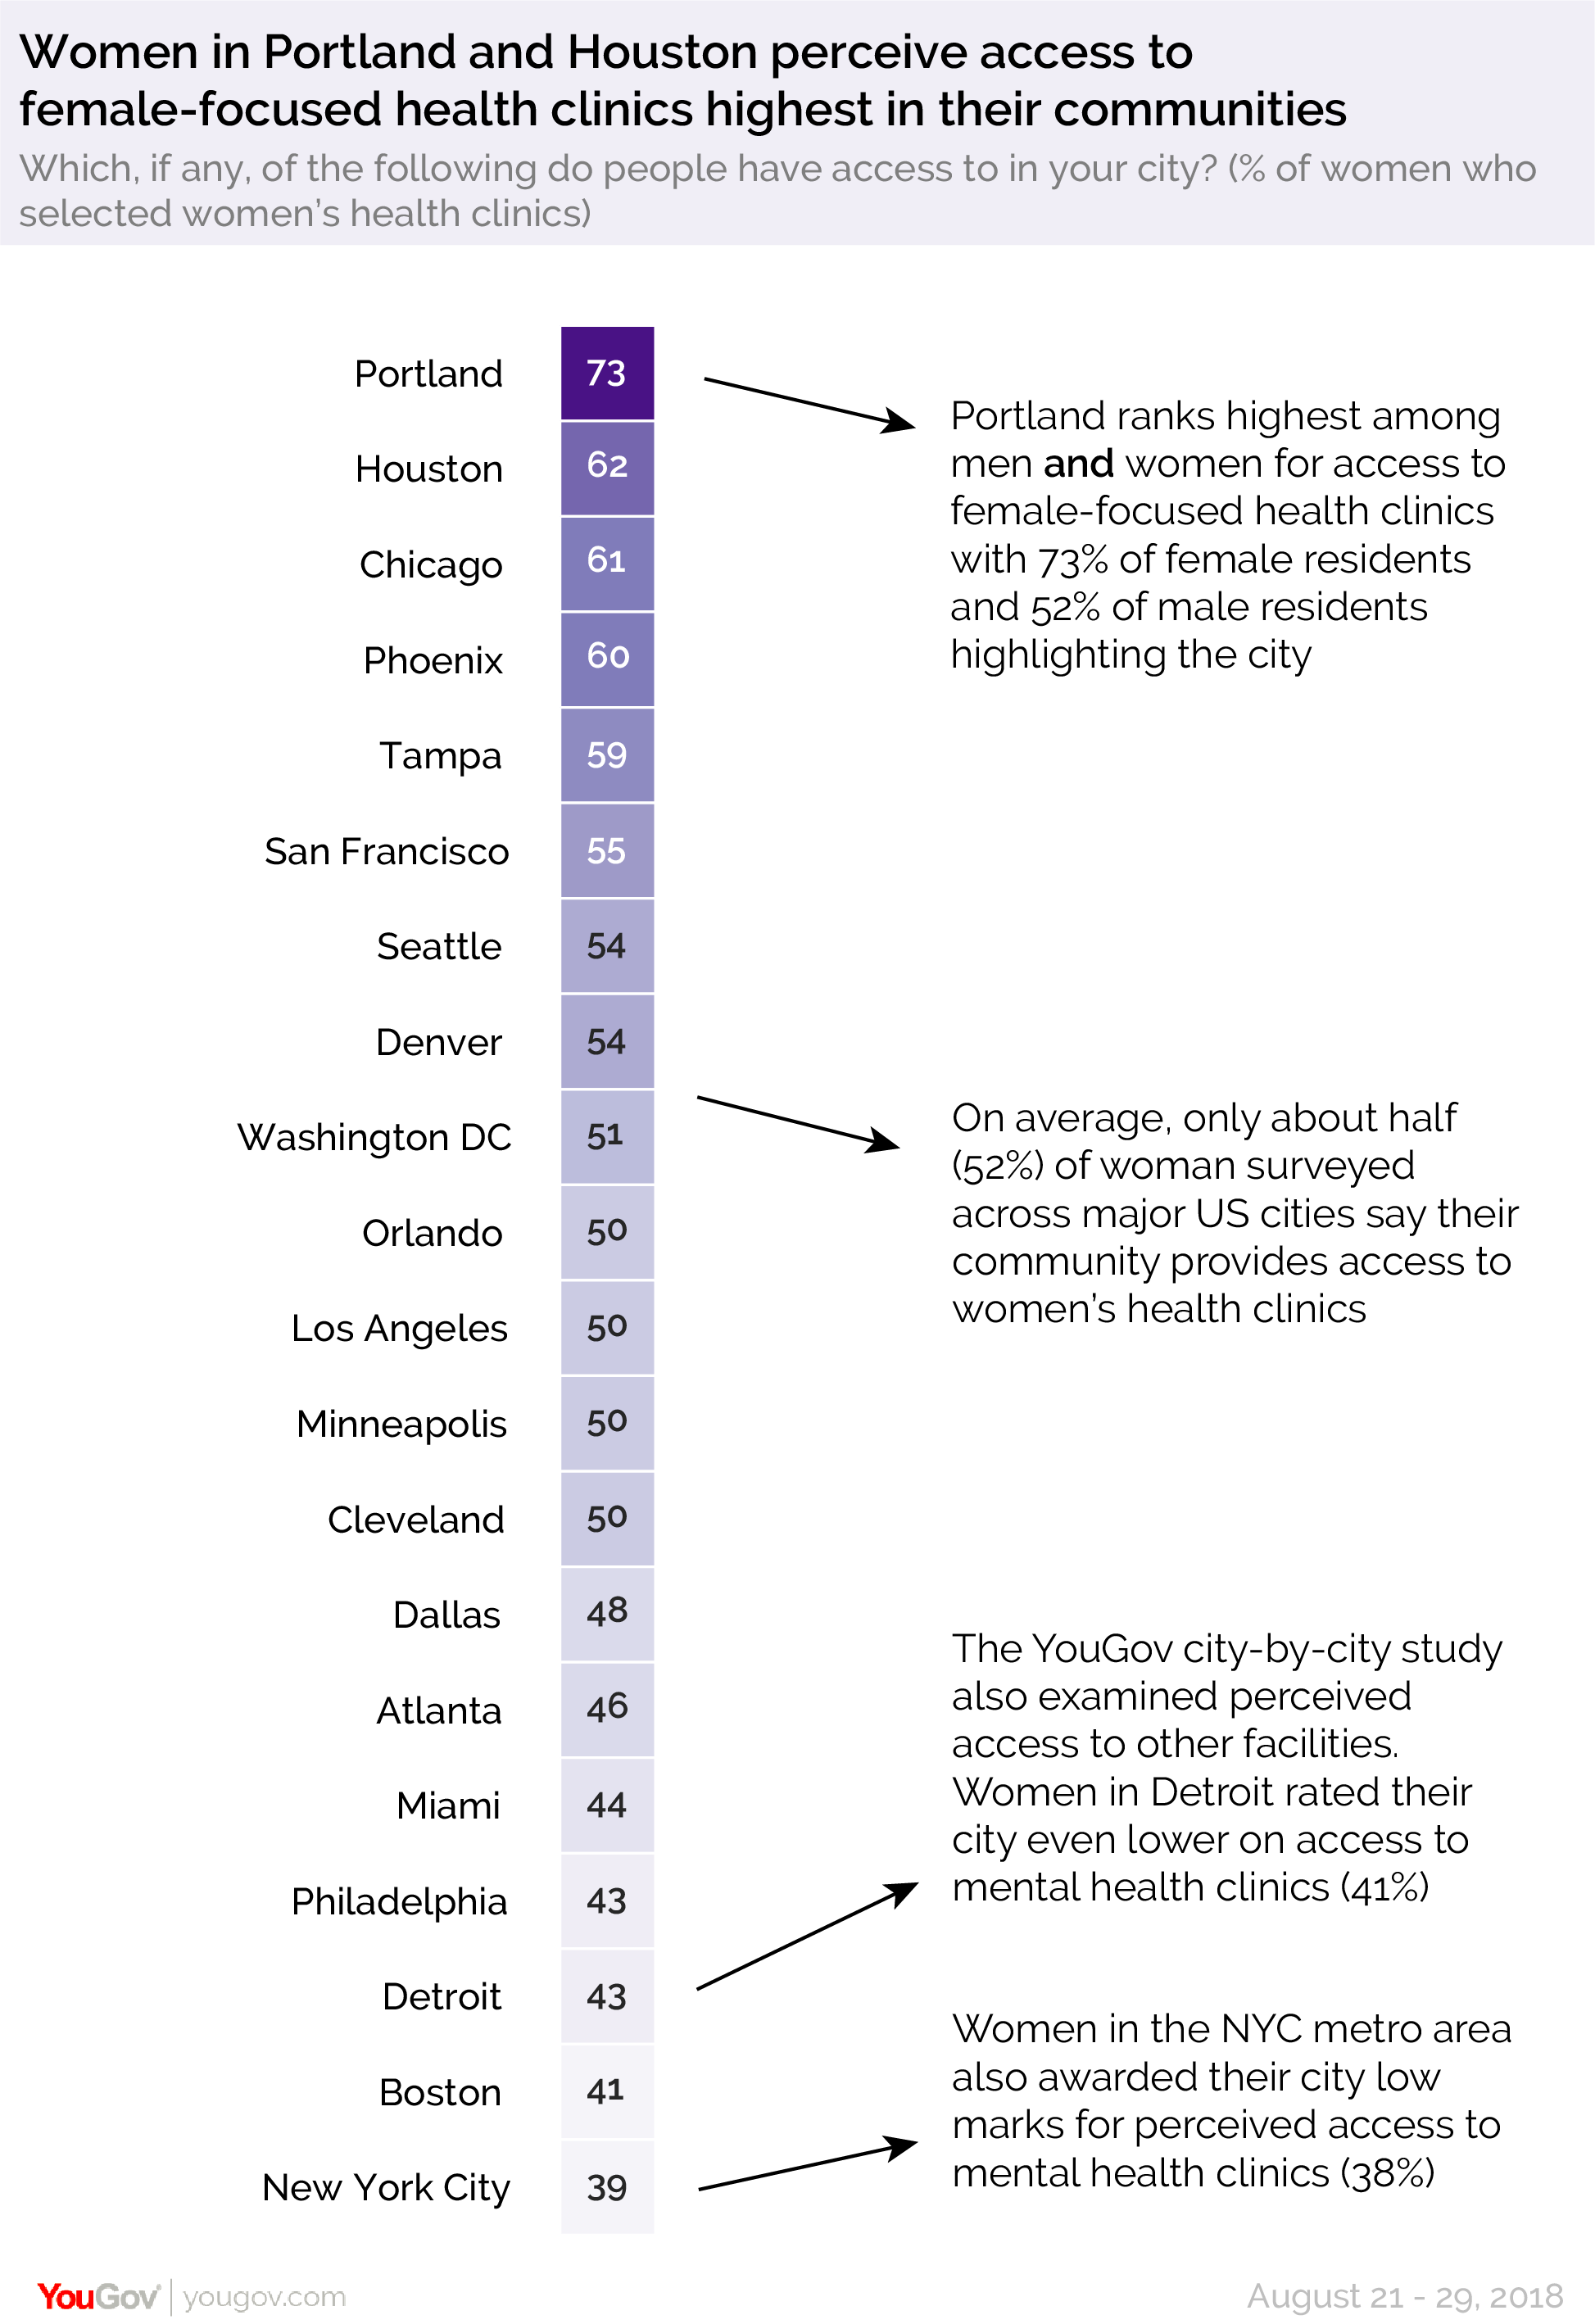 Women in Portland and Houston perceive access to female-focused health clinics highest in their communities